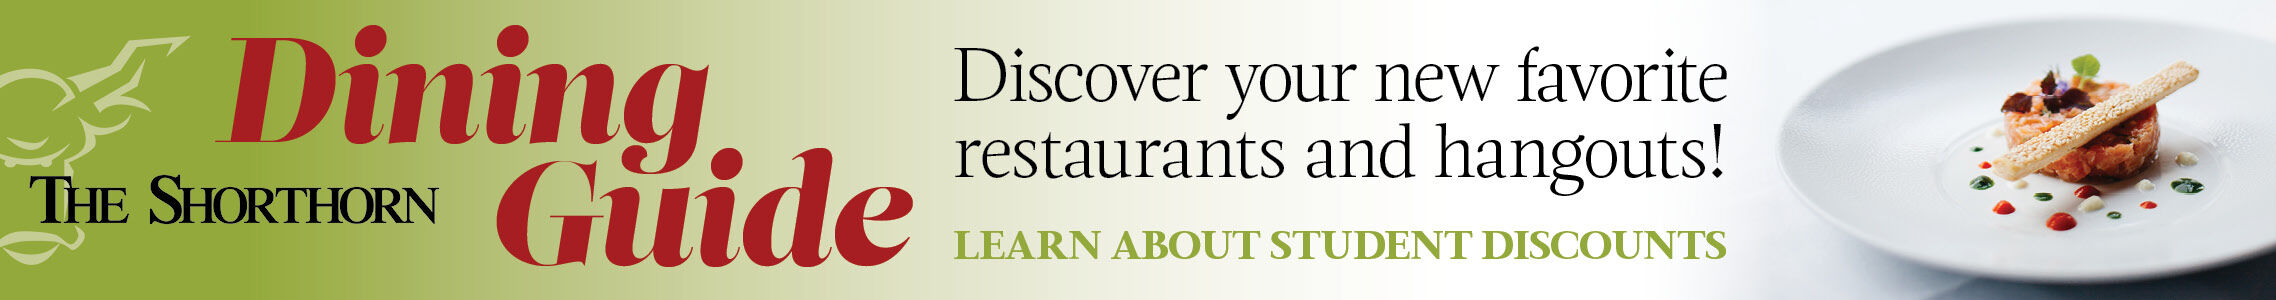 Dining Guide Header Image